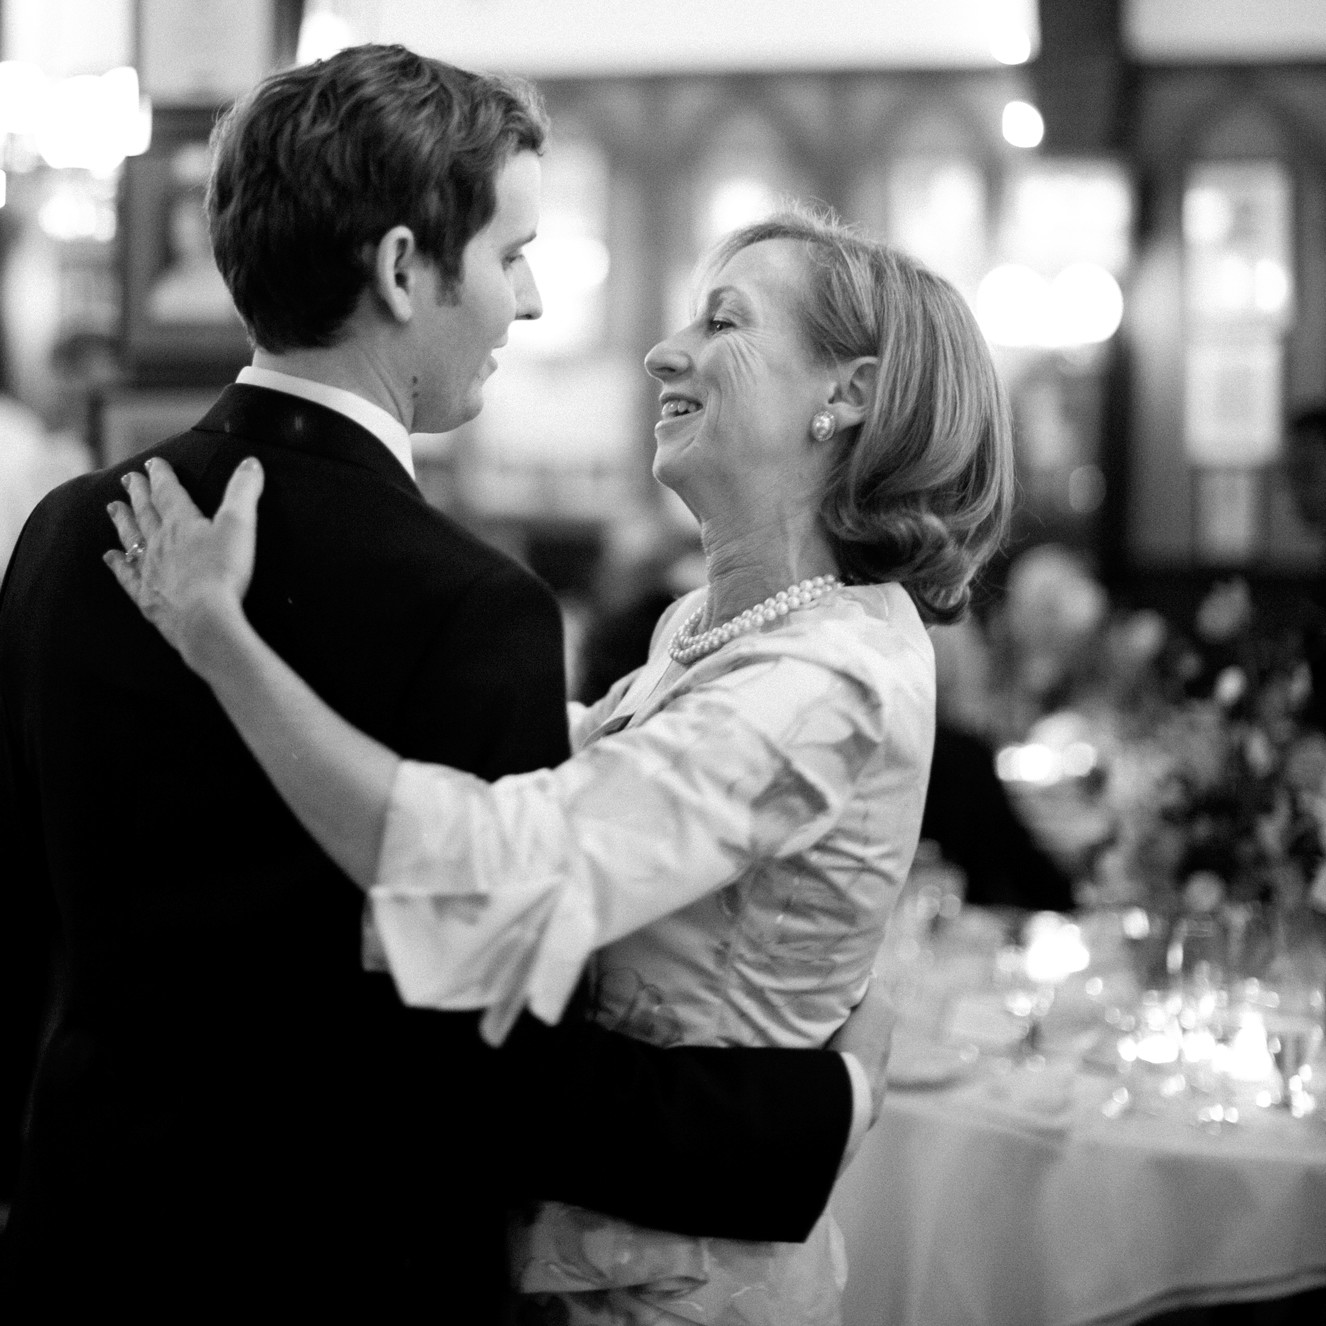 MOTHER AND SON FORBIDEN LOVE  The Best Mother-Son Dance Songs From Weddings